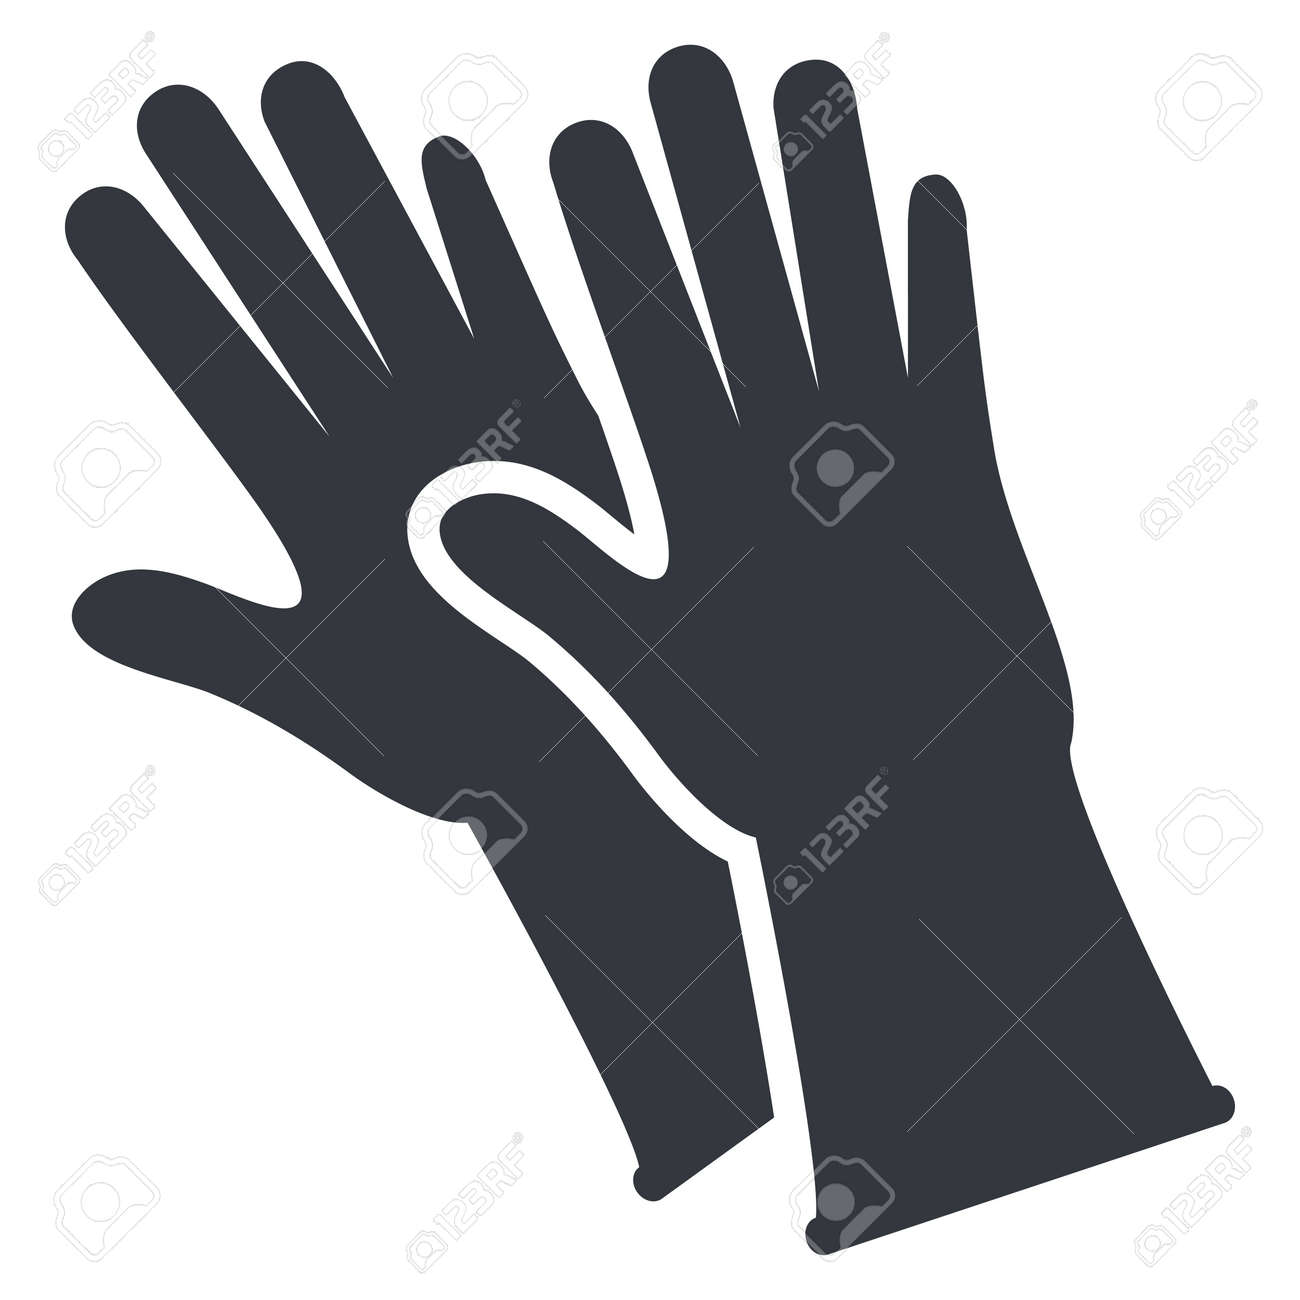 Rubber Gloves Silhouette Icon on White background - 169351234